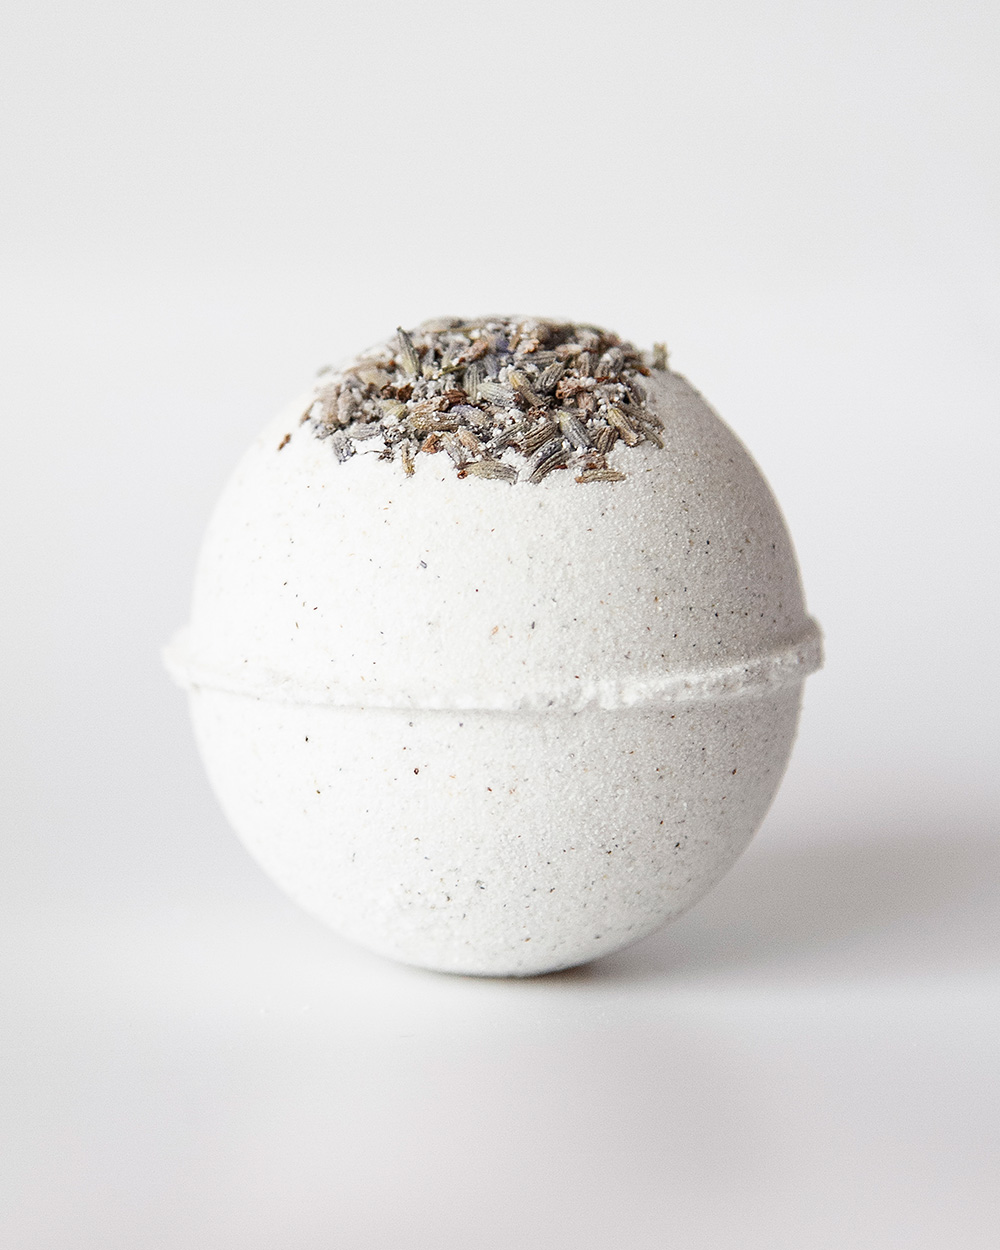 Skinapy natural and organic bath bomb with lavender scent